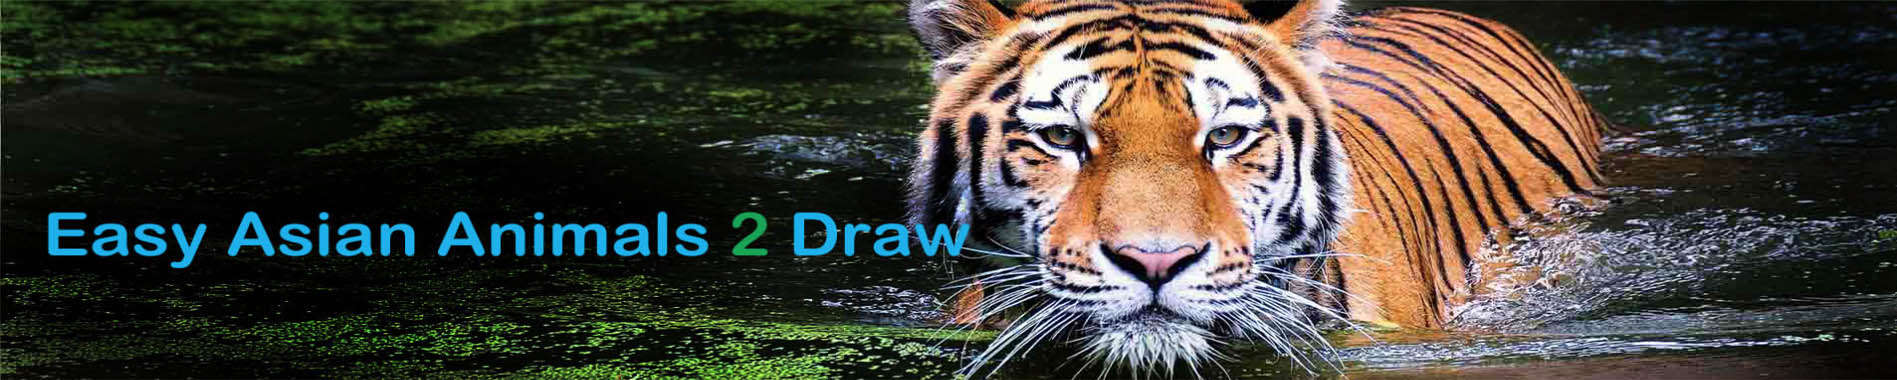 How to Draw an Asia Tiger